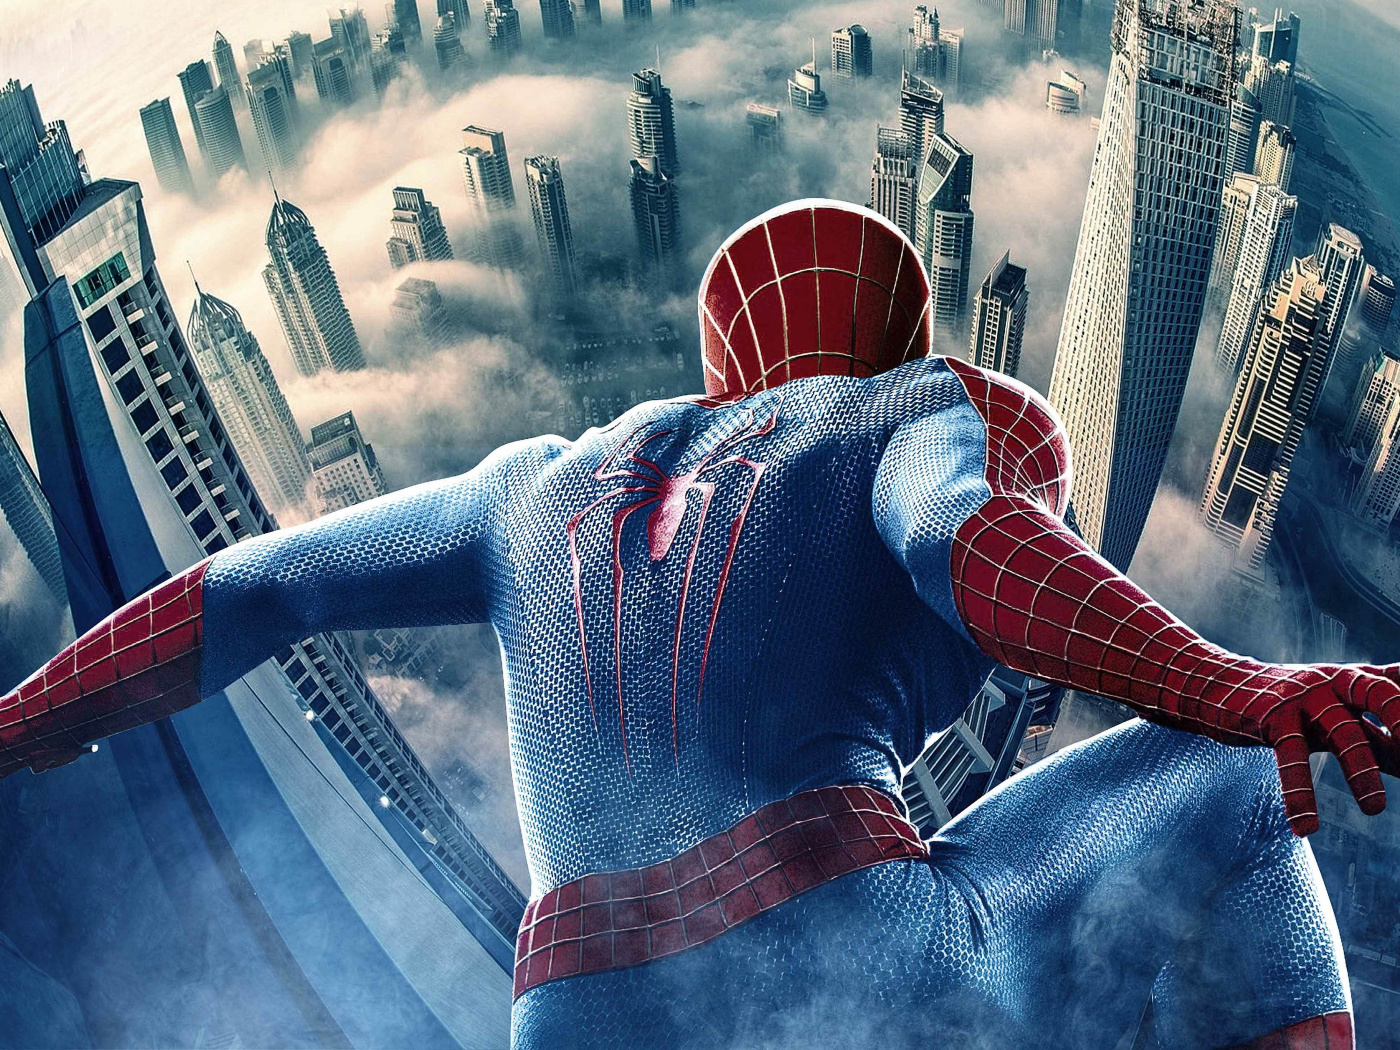 Spider Man Image Download: Download Spider Man 360x640 Resolution, HD 4K Wallpaper